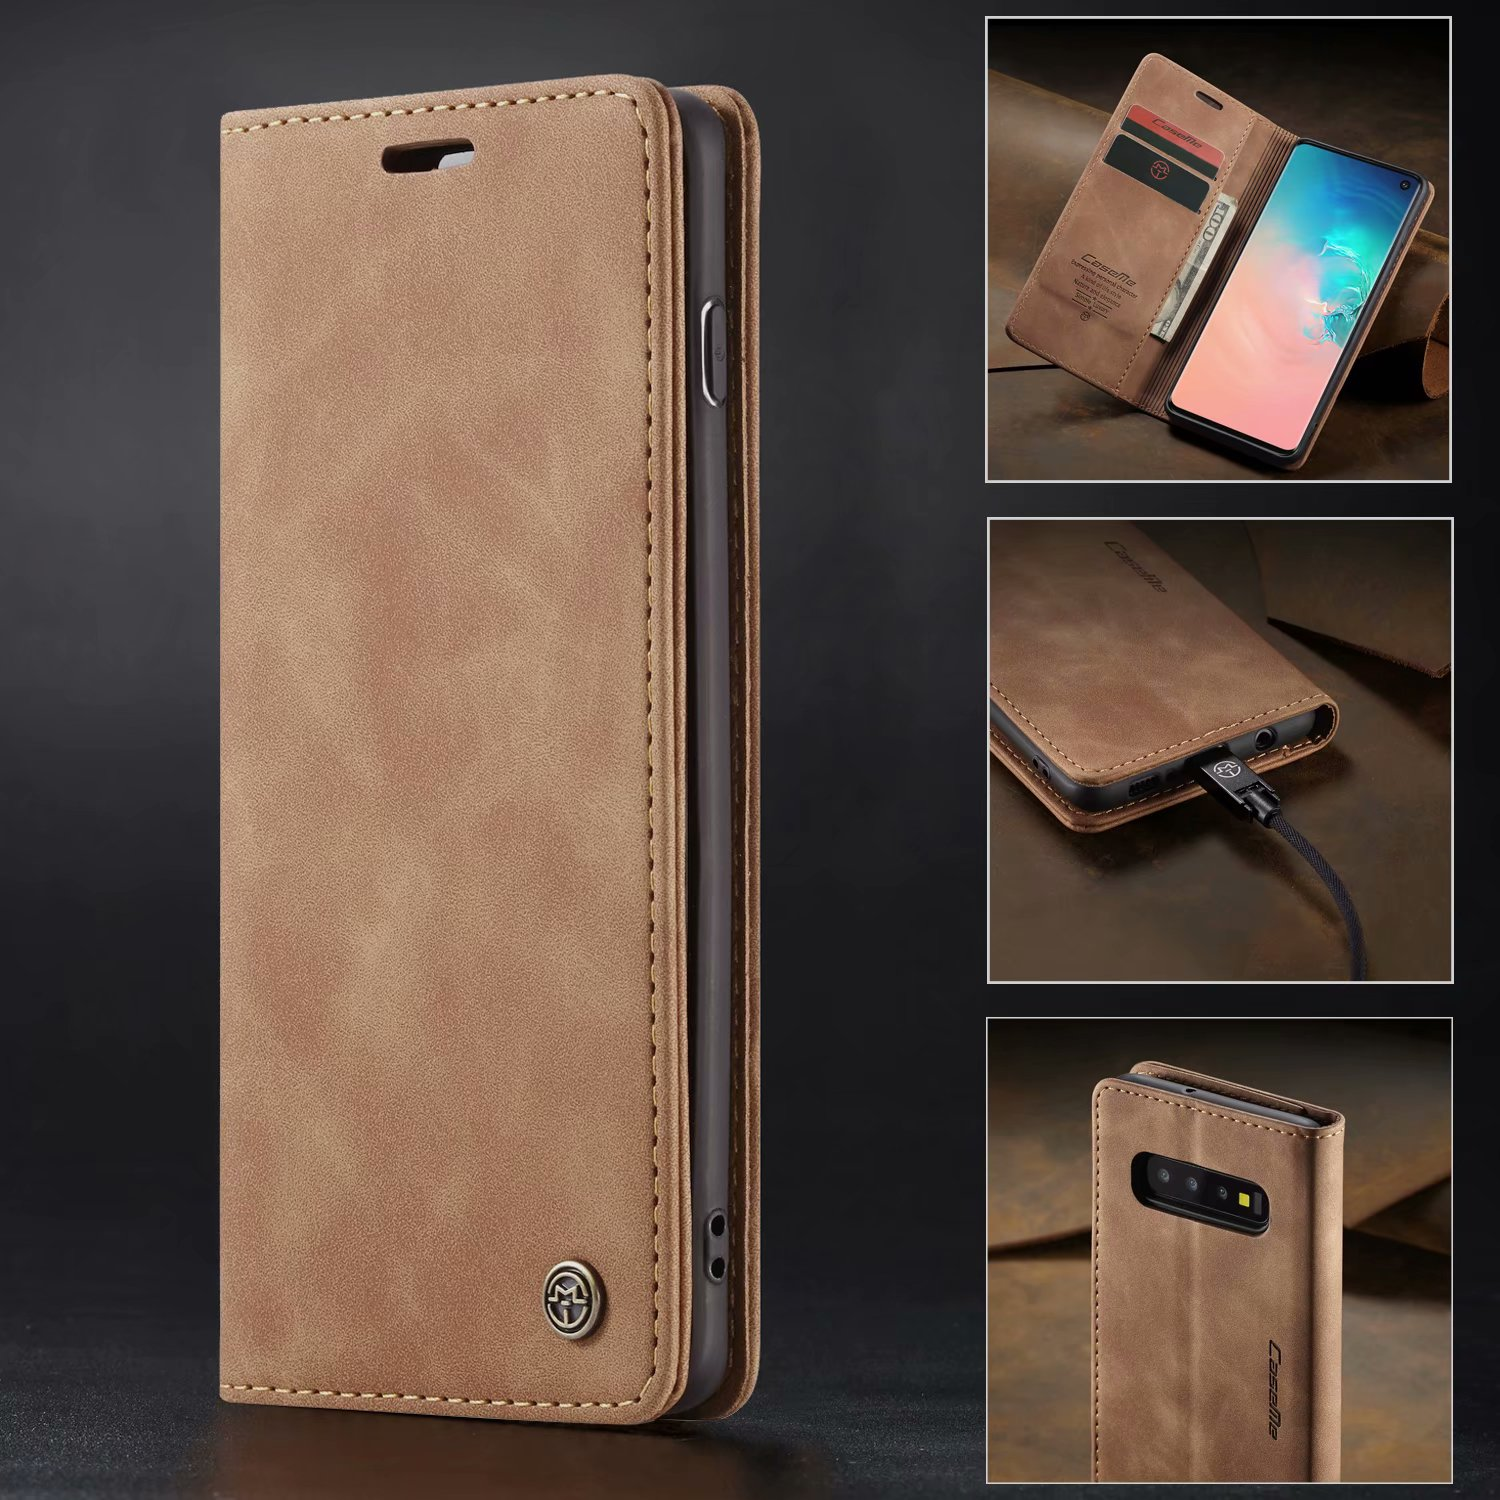 CaseMe Phone <font><b>Case</b></font> For <font><b>Samsung</b></font> Galaxy S10 5G Luxury Credit Card <font><b>Stand</b></font> Magnetic <font><b>Leather</b></font> <font><b>Flip</b></font> Cover For <font><b>Samsung</b></font> S10 5G S10Plus A70 image